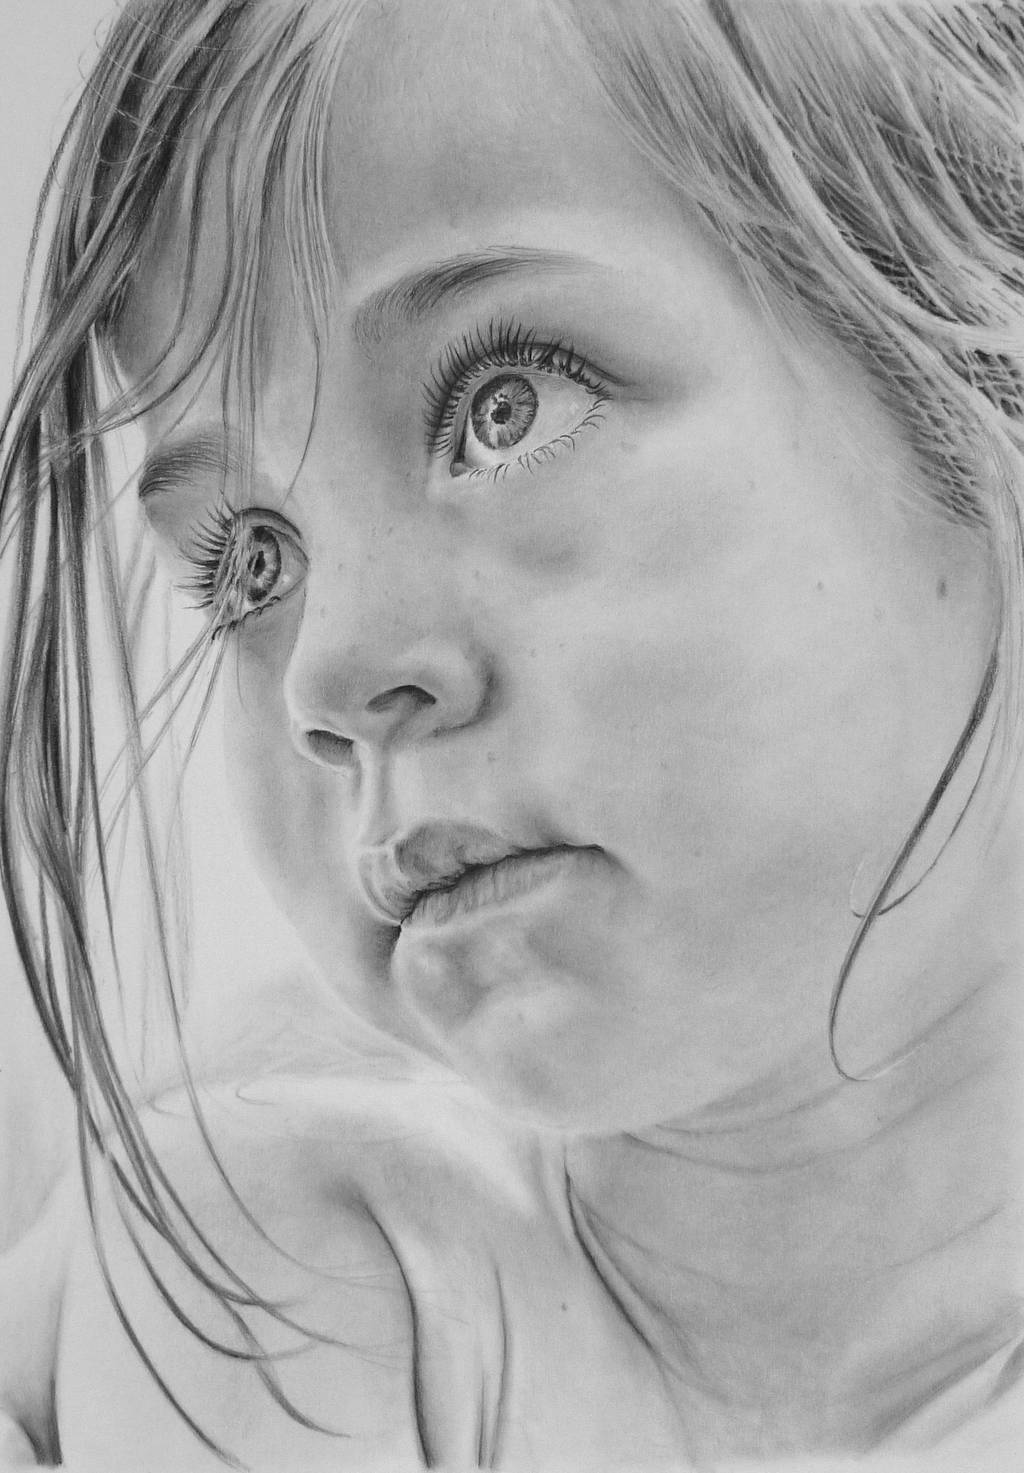 Pencil portrait of a young girl by LateStarter63